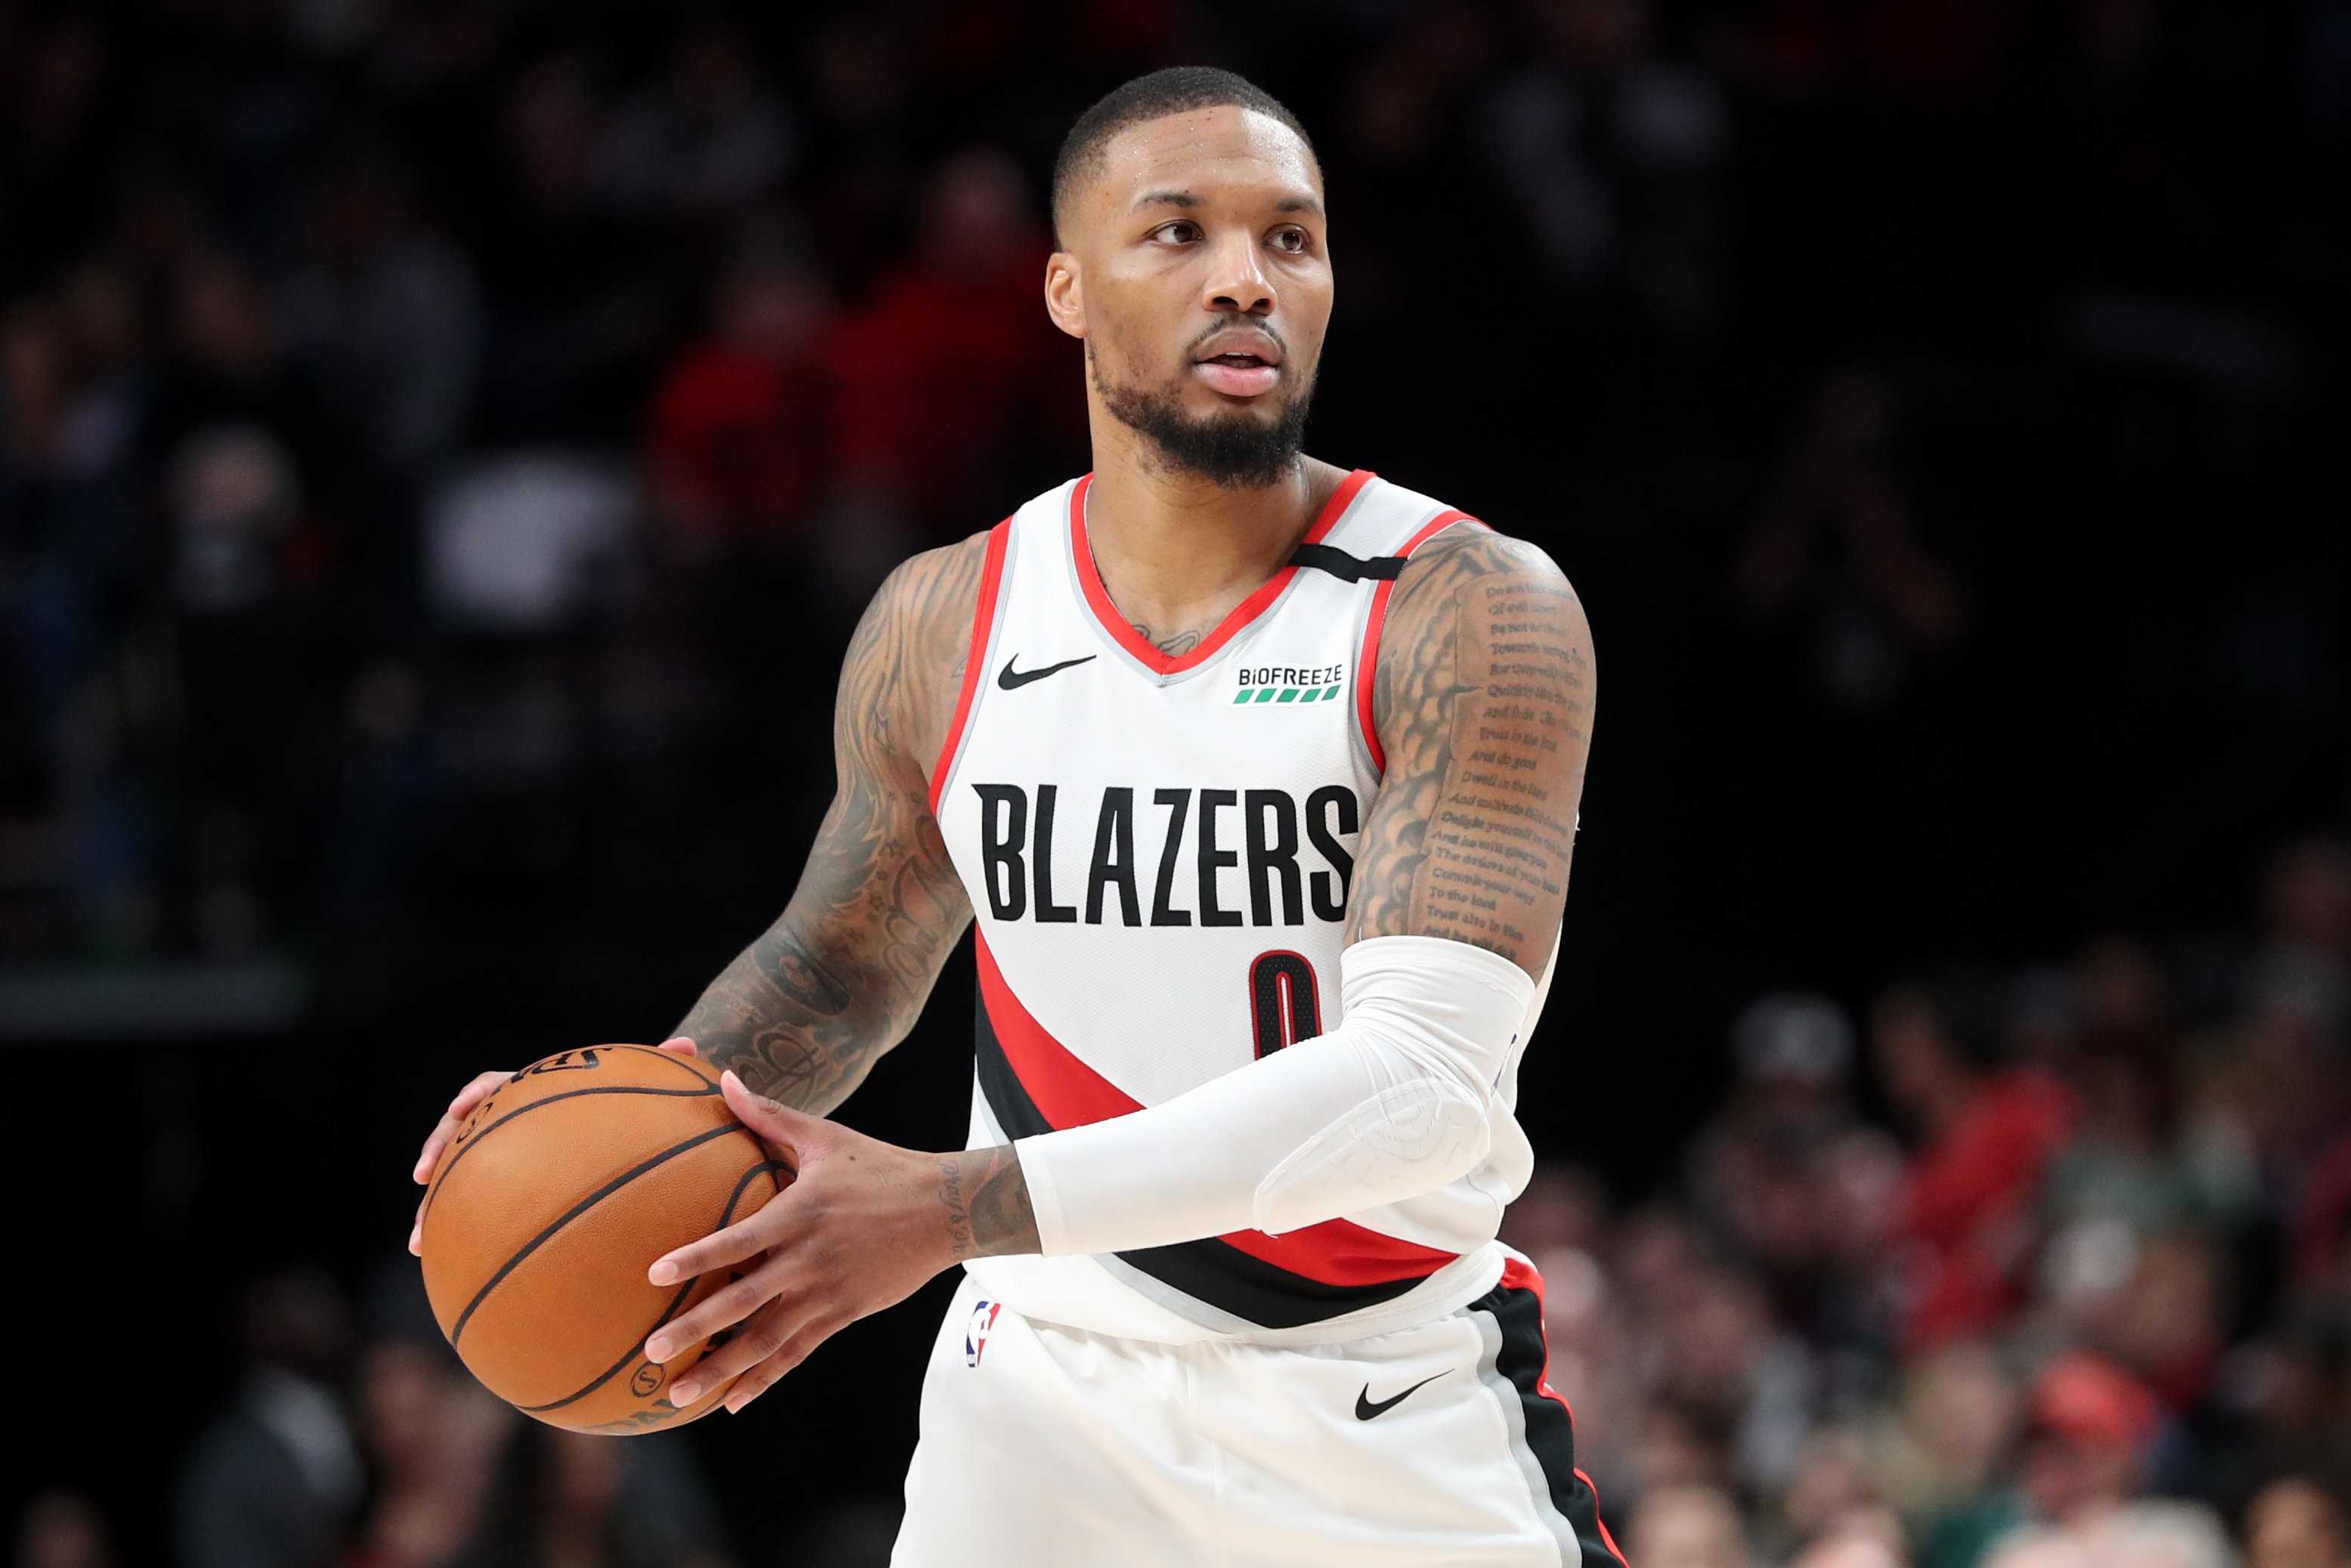 Damian Lillard #0 of the Portland Trail Blazers during a game against the San Antonio Spurs at Moda Center on February 06, 2020 in Portland, Oregon | Photo: GettyImages